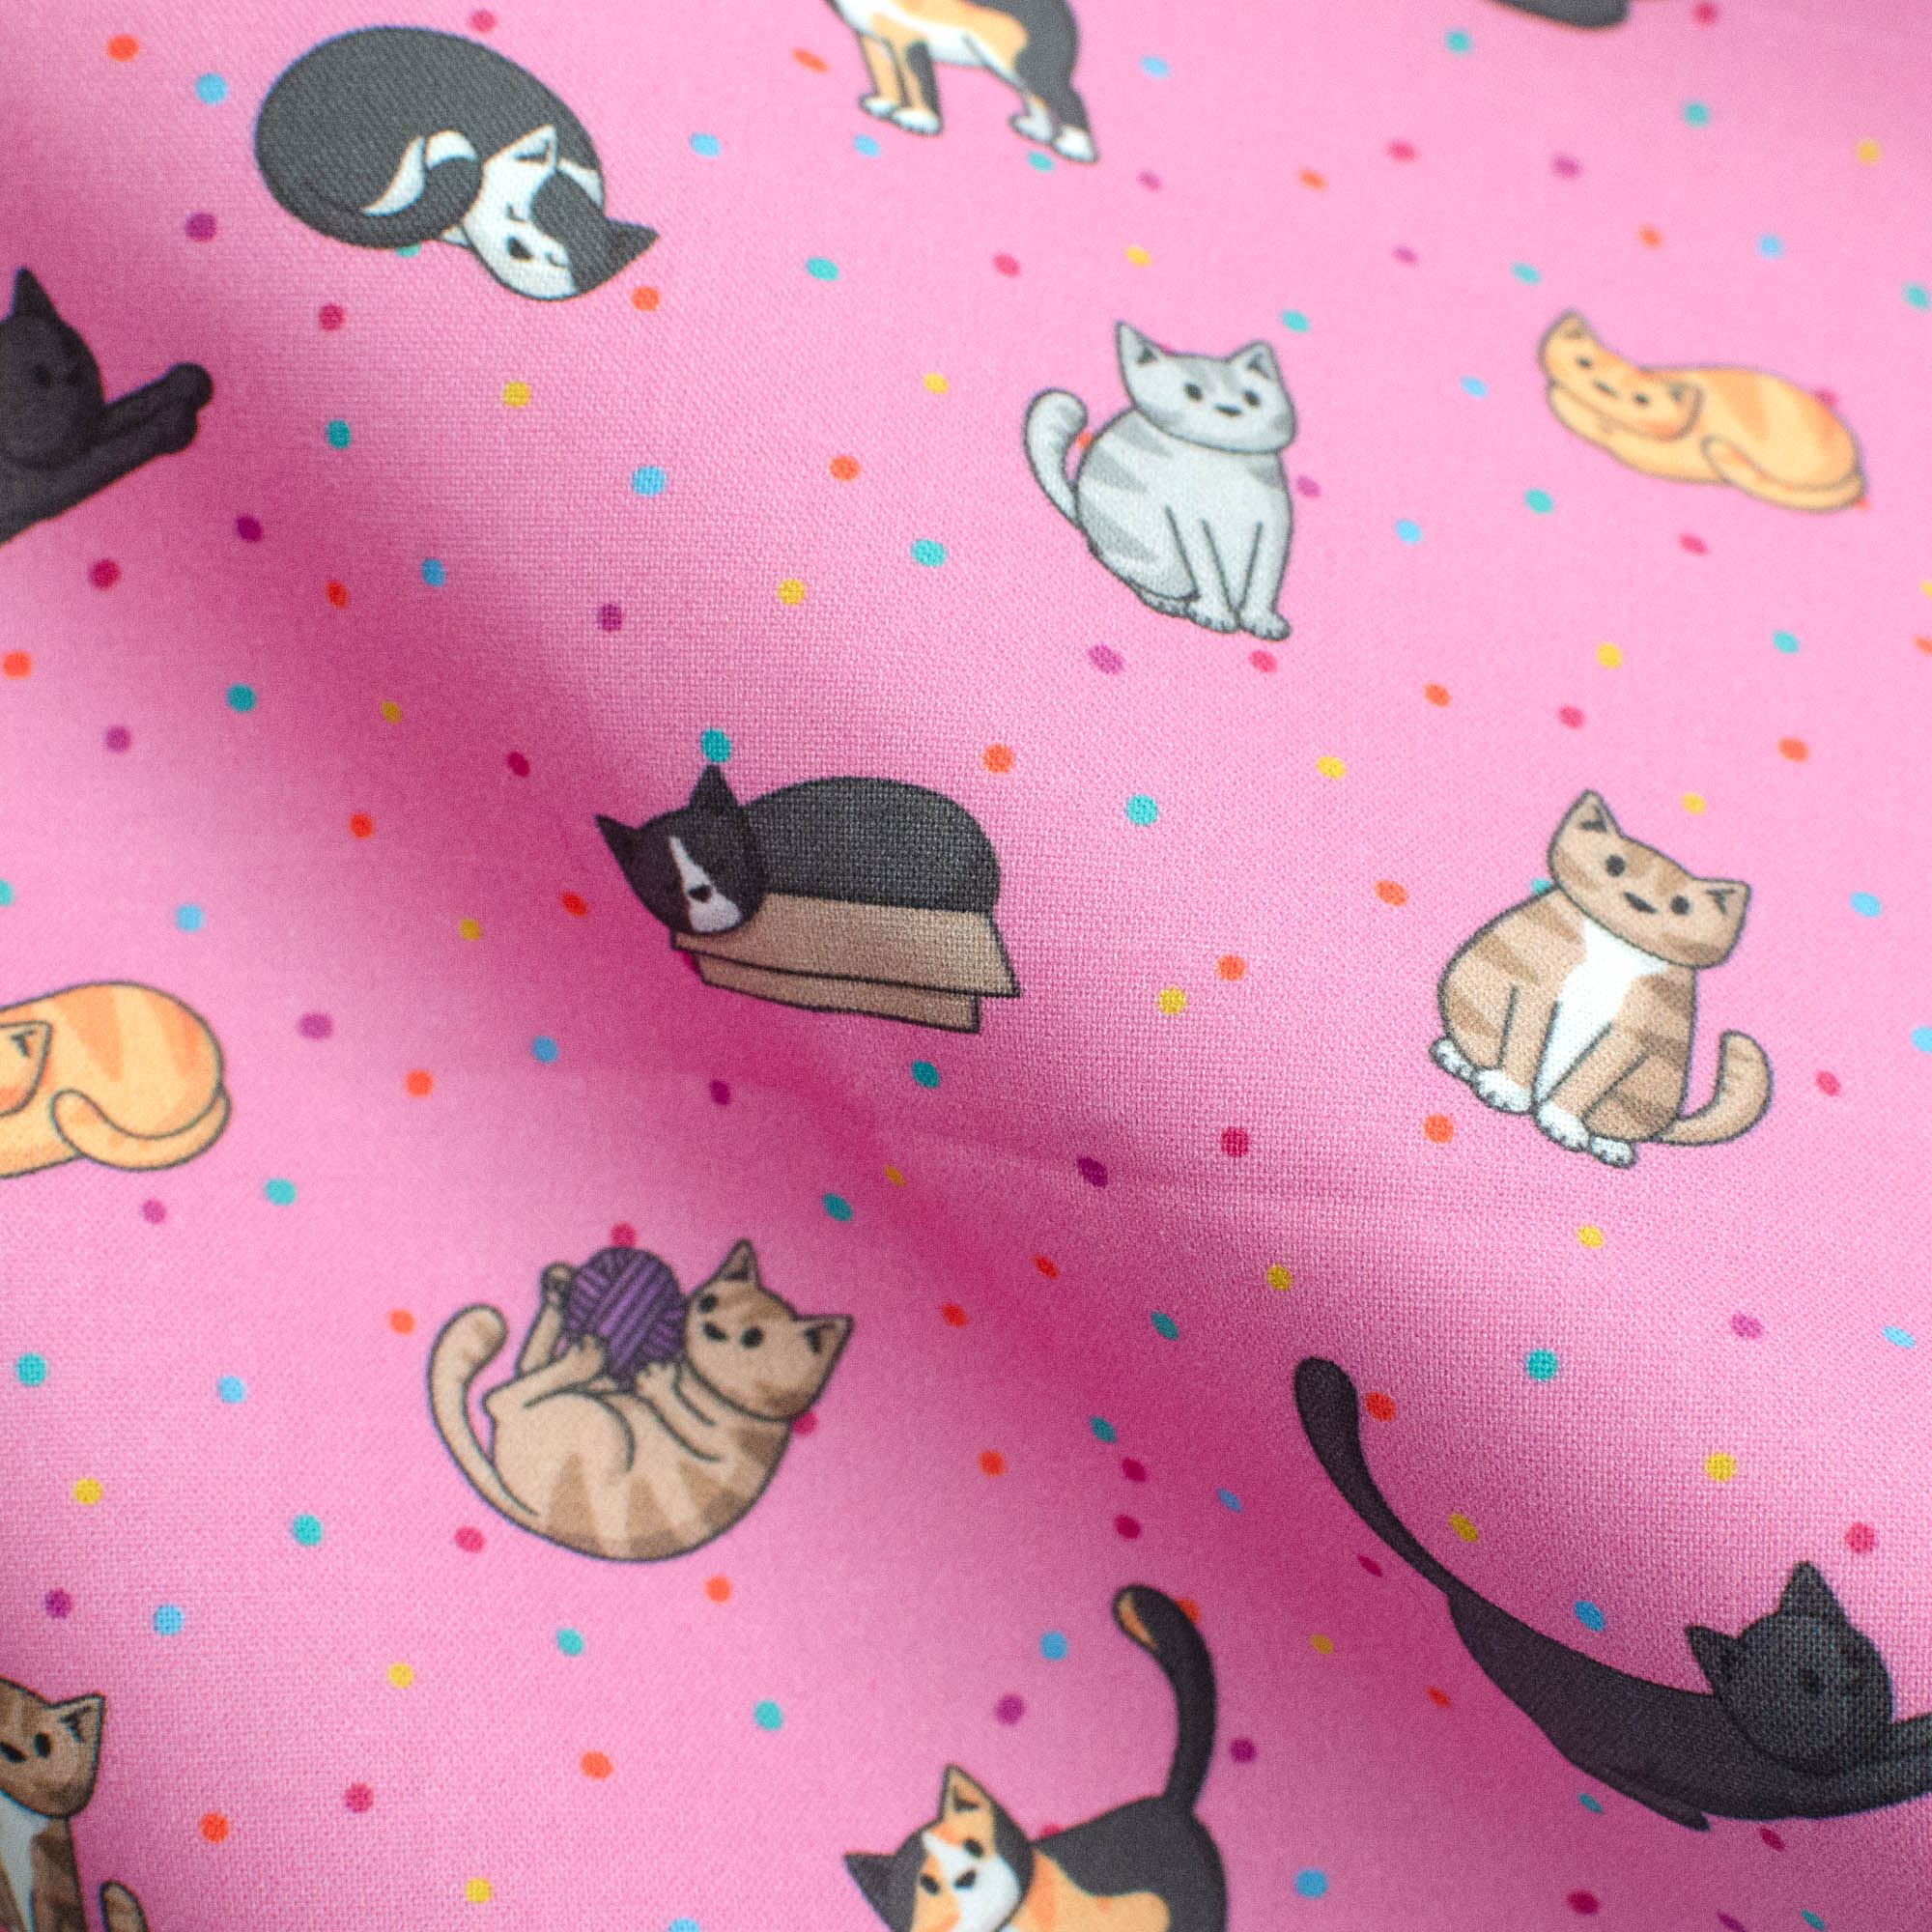 Doodlecats on pink fabric